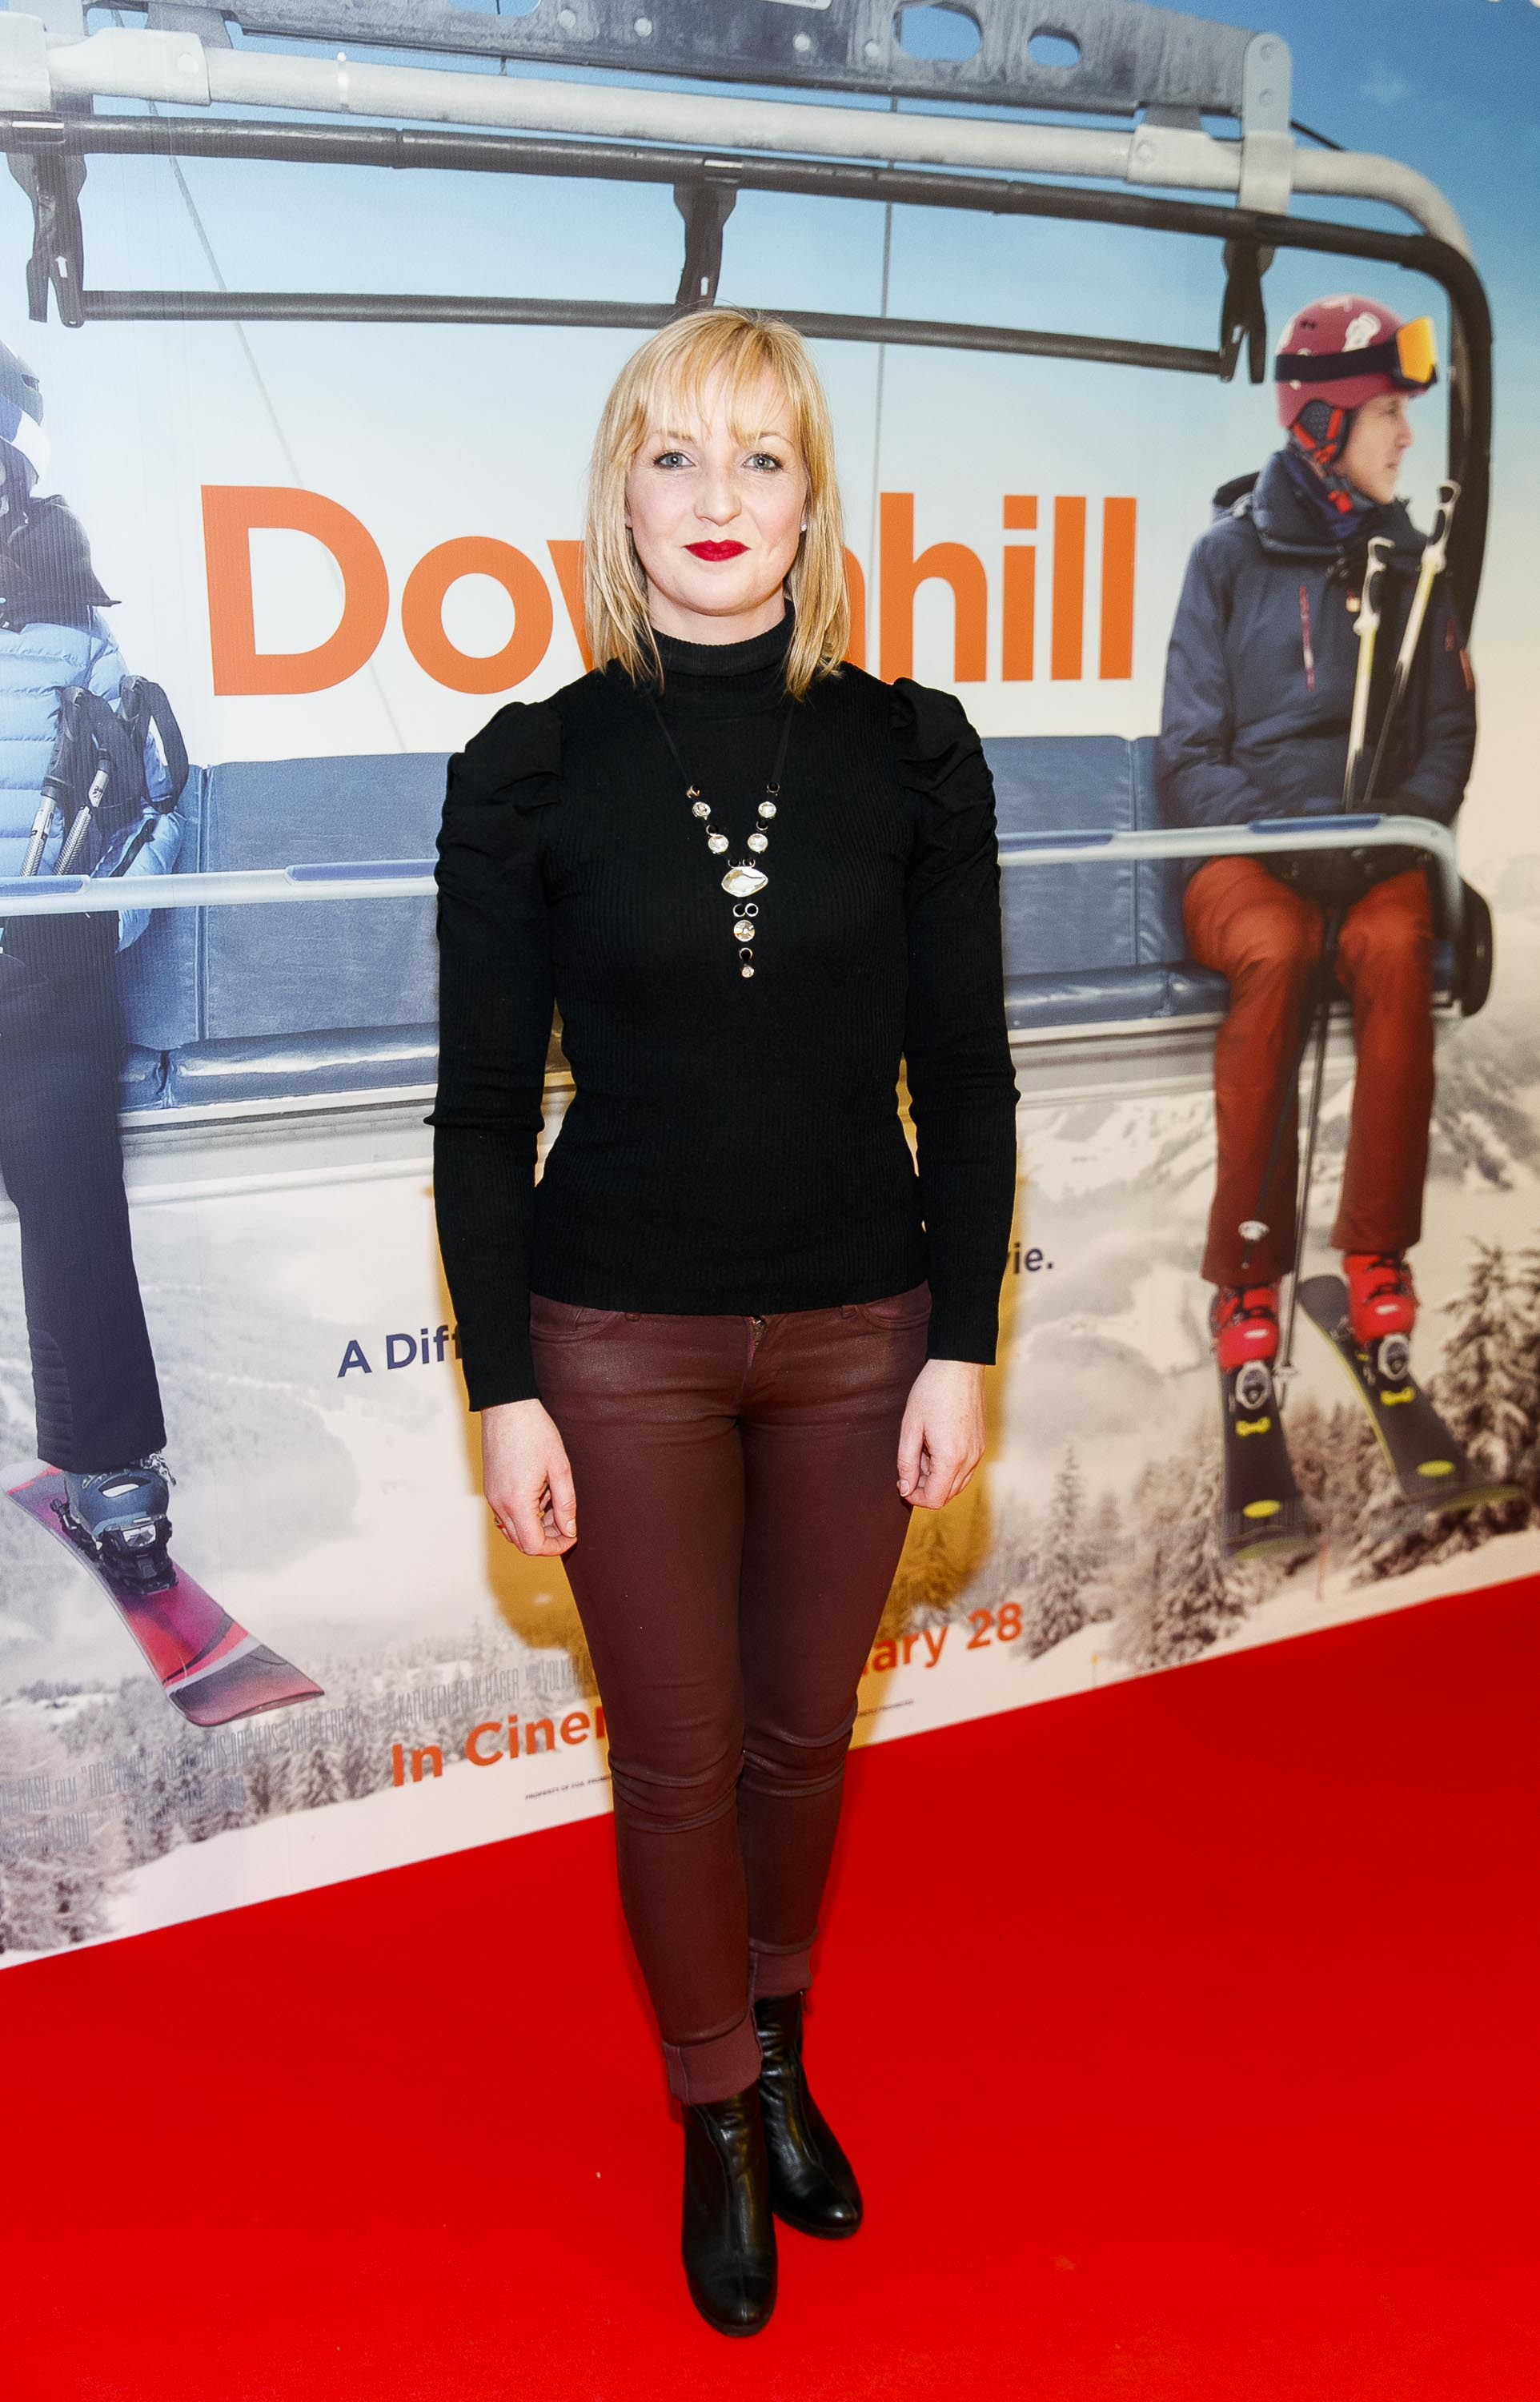 Irish stunt performer Aoife Byrne who acted as stunt double for Julia Louise-Dreyfus pictured at a special preview screening of Downhill at the Light House Cinema, Dublin. Picture: Andres Poveda.